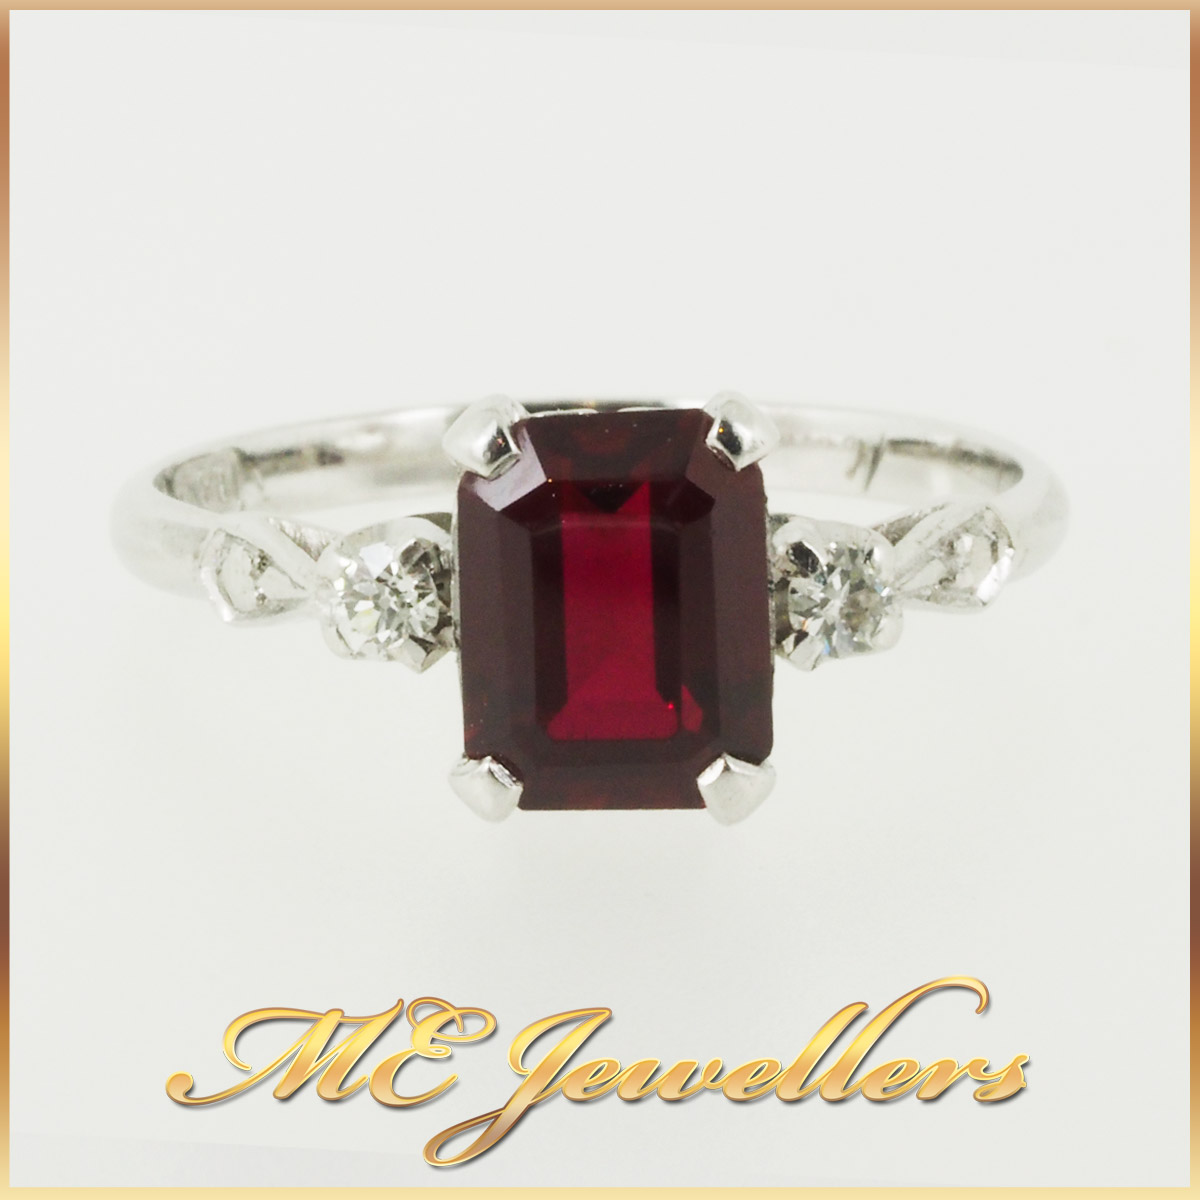 1401_Vintage Ruby Dress Ring With Diamond In Platinum and 18K White Gold (10)